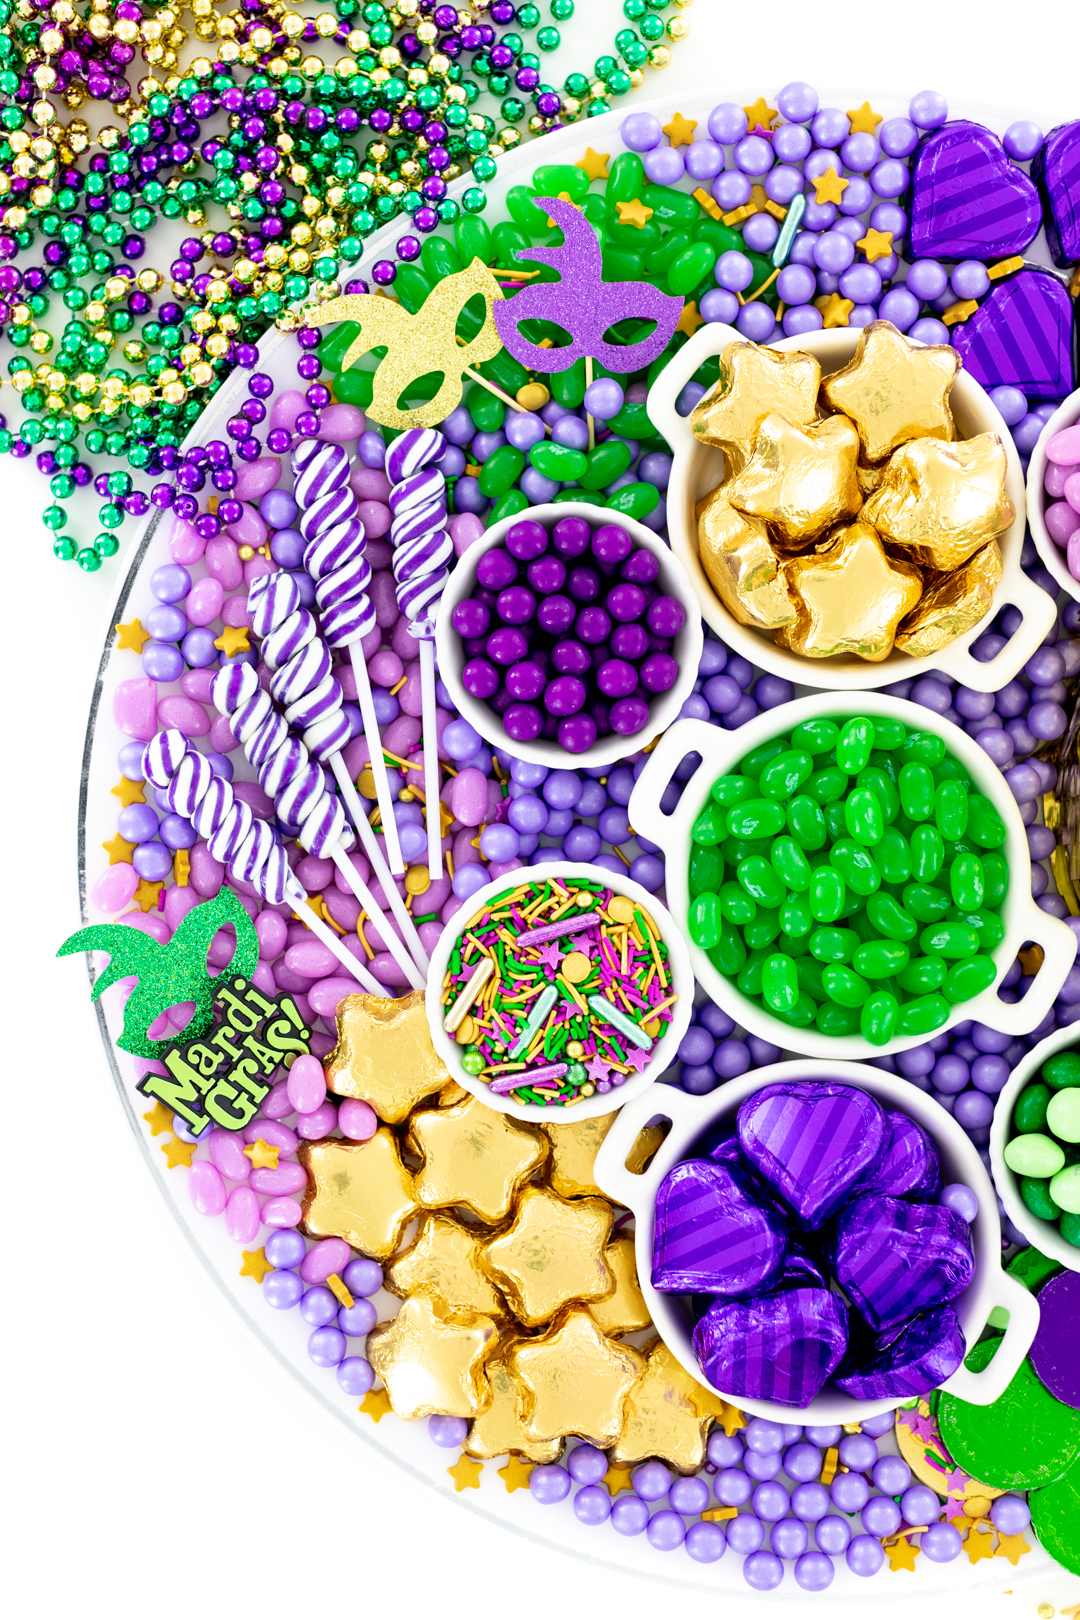 mardi gras candy grazing board with purple swirl lollipops and more green, purple and gold candies.